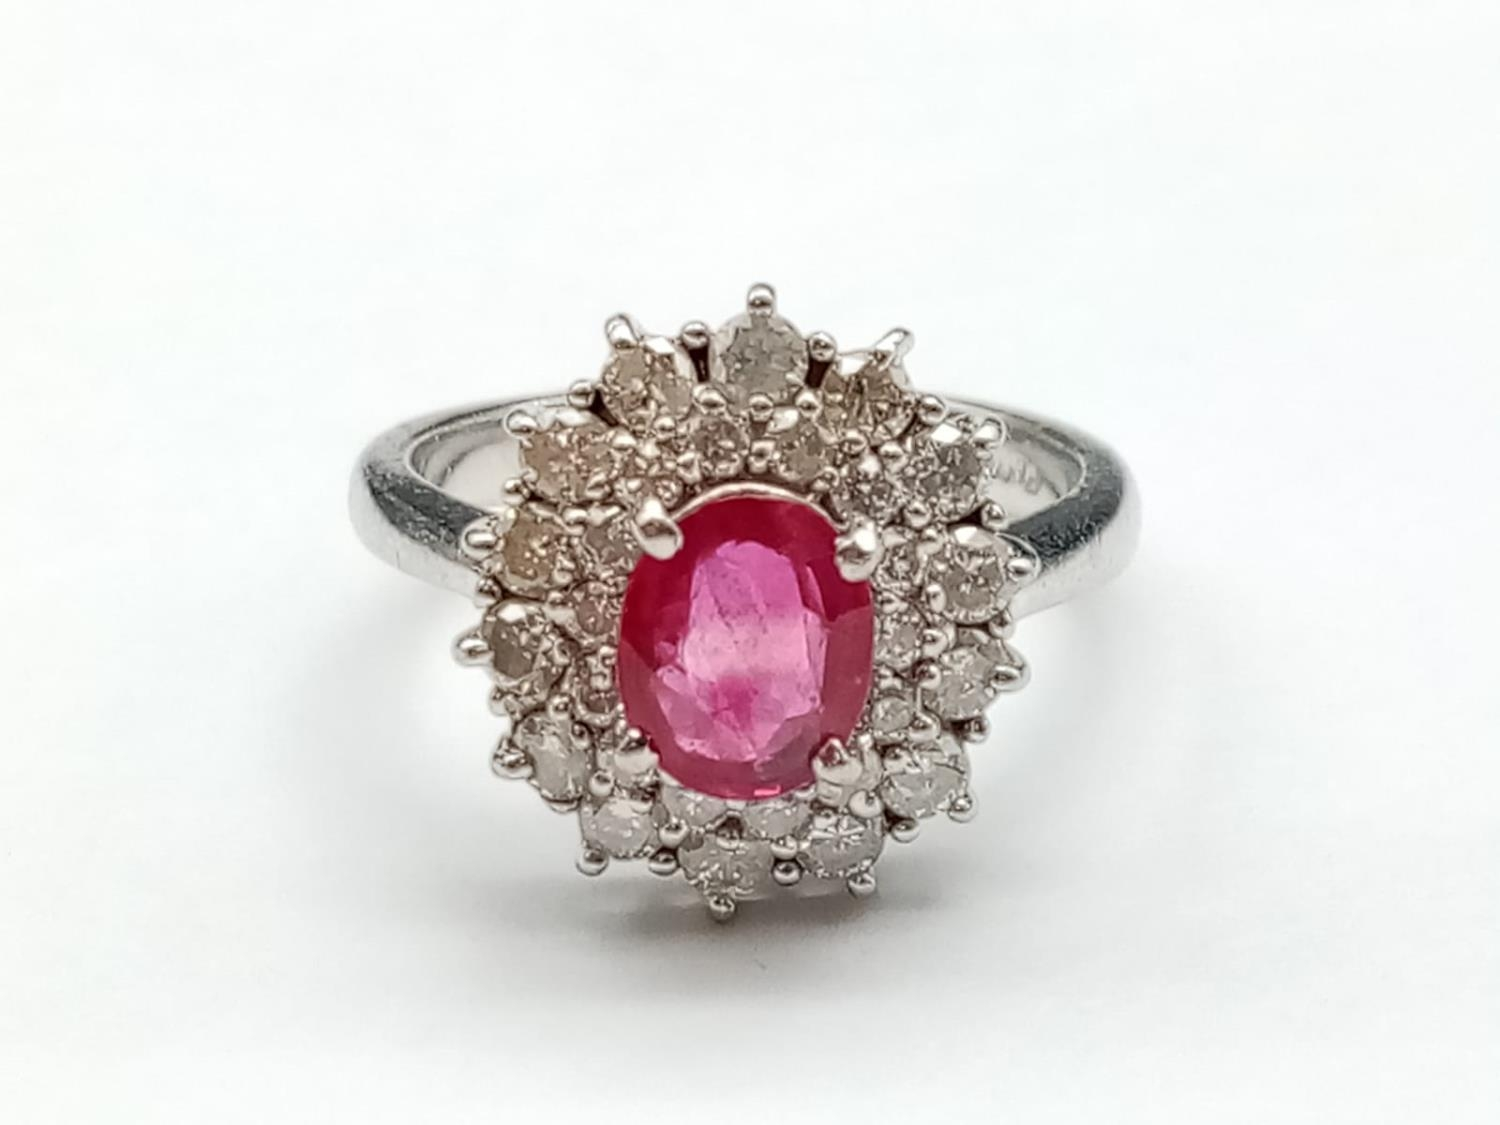 A PLATINUM RING WITH PINK RUBY CENTRE STONE WITH DIAMOND SURROUND. 6.5gms size K/L